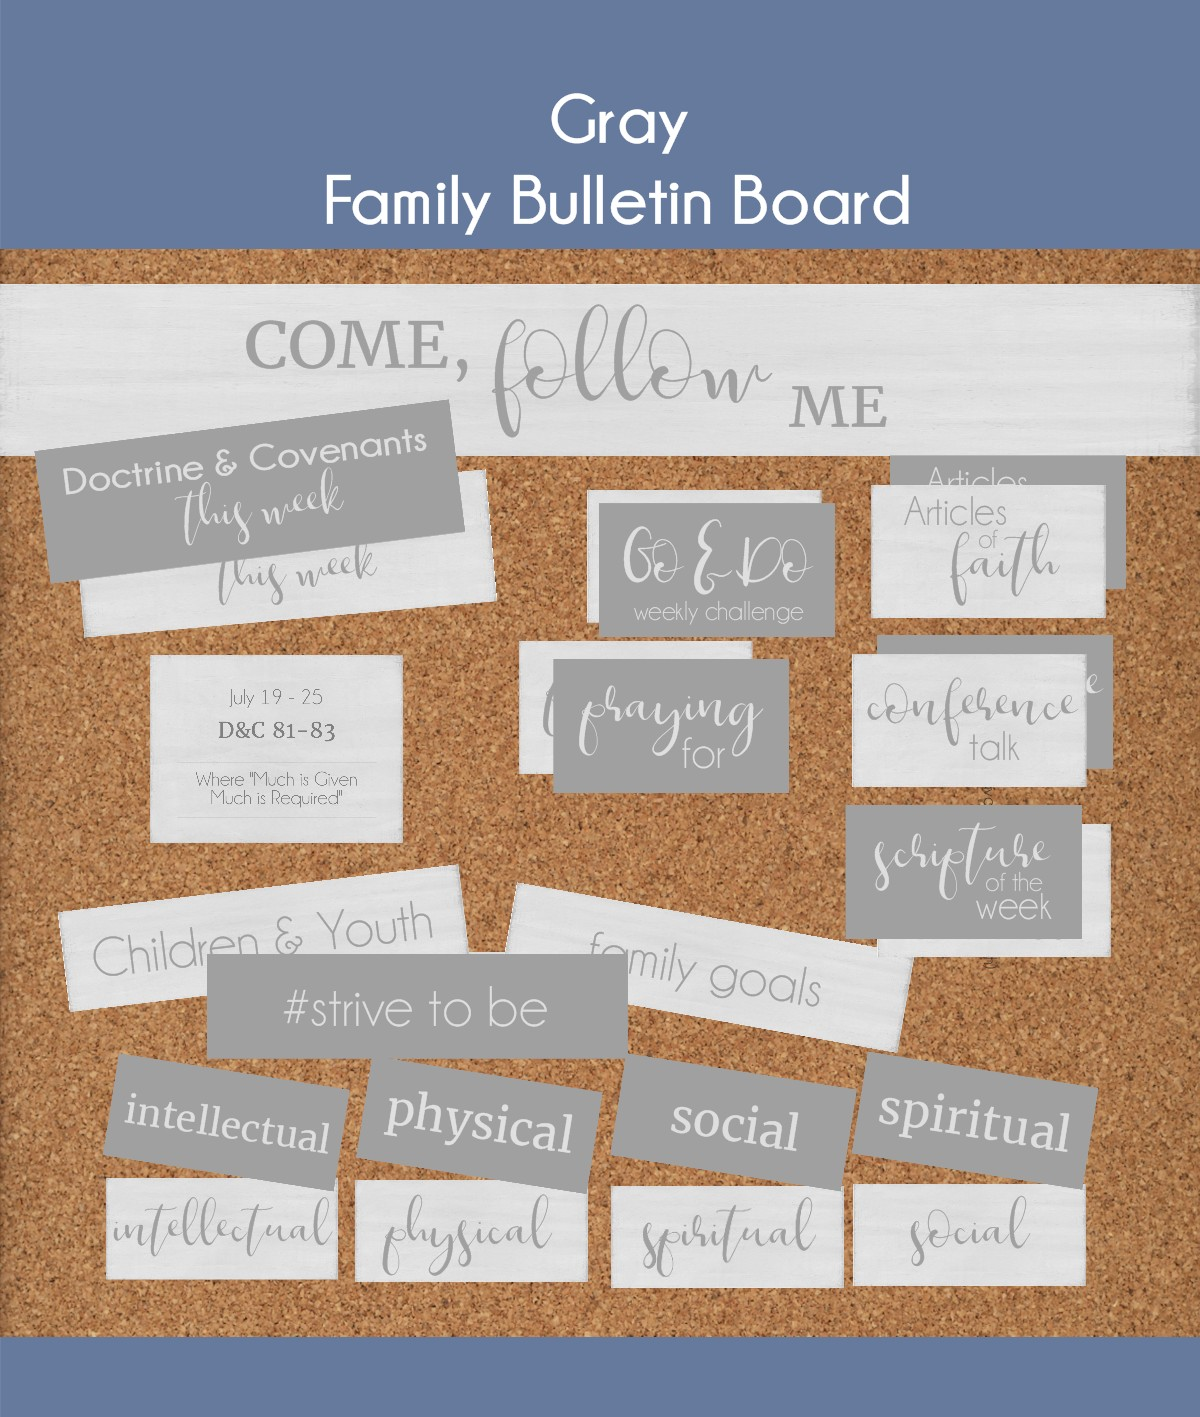 come follow me bulletin board for families, children and youth program